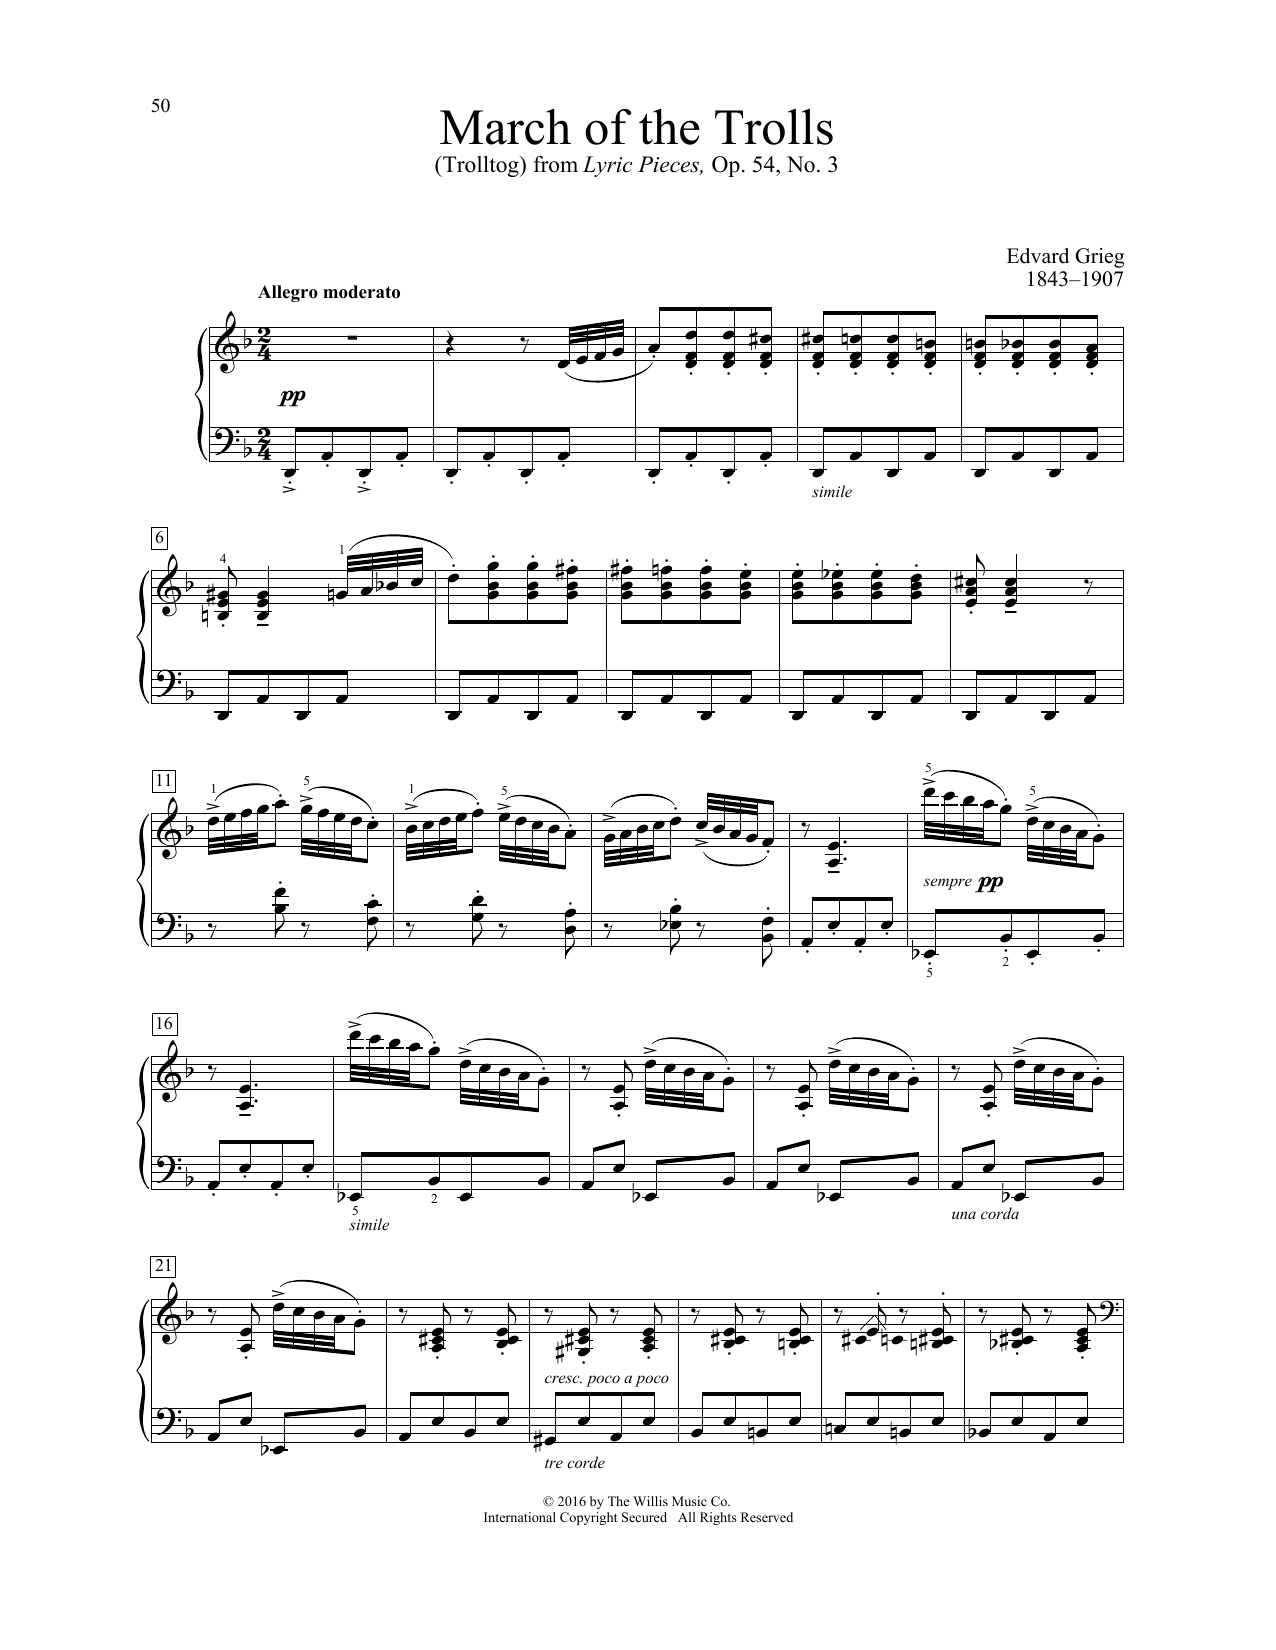 Edvard Grieg March Of The Trolls (Trolltog) sheet music notes and chords. Download Printable PDF.